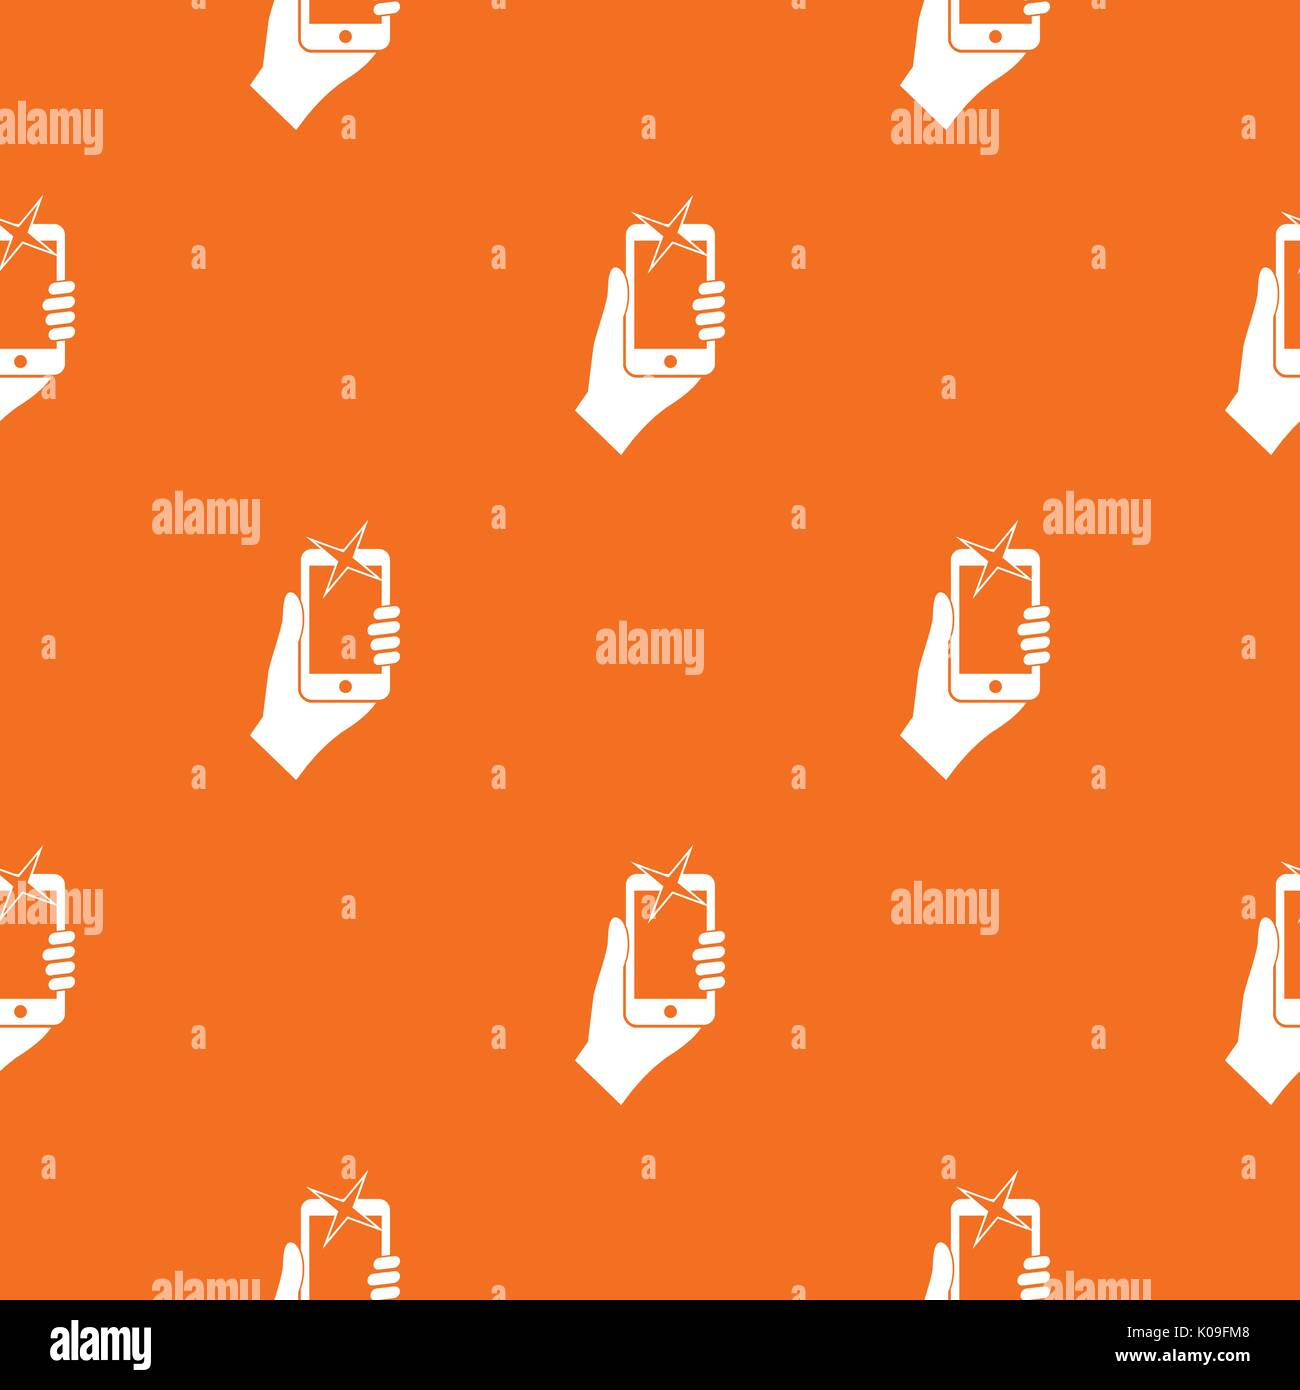 Hand photographed on mobile phone pattern seamless - Stock Vector